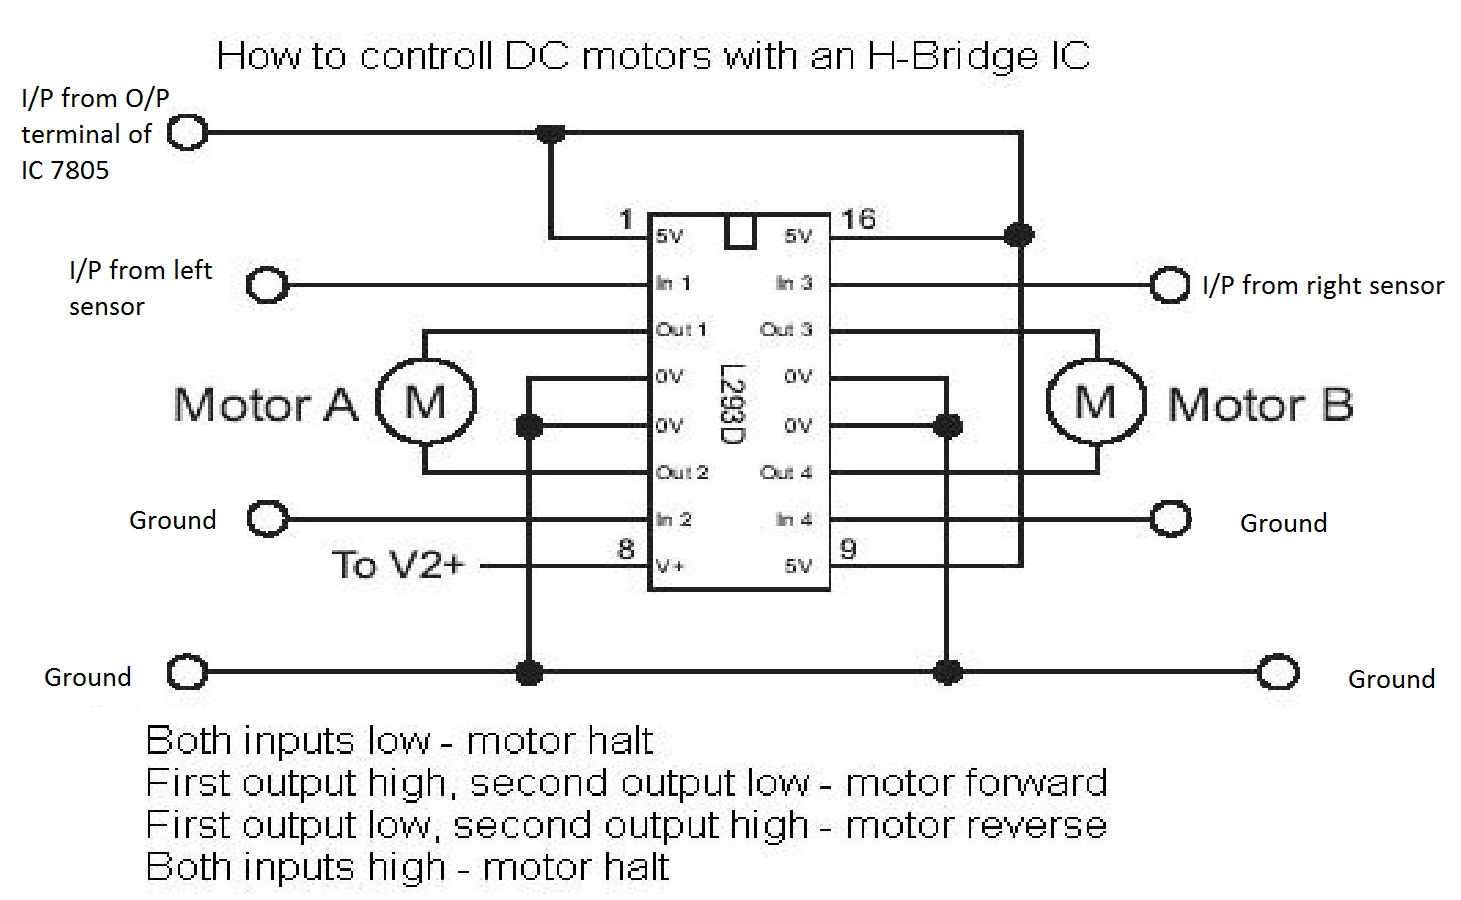 Unleash That Tech Beast In You Build Your Own Line Follower Dc Motor Forward And Reverse Circuit Of The Left Sensor Output Right To Pins Marked As In1 In3 Respectively Shown Sketch Titled How Control Motors